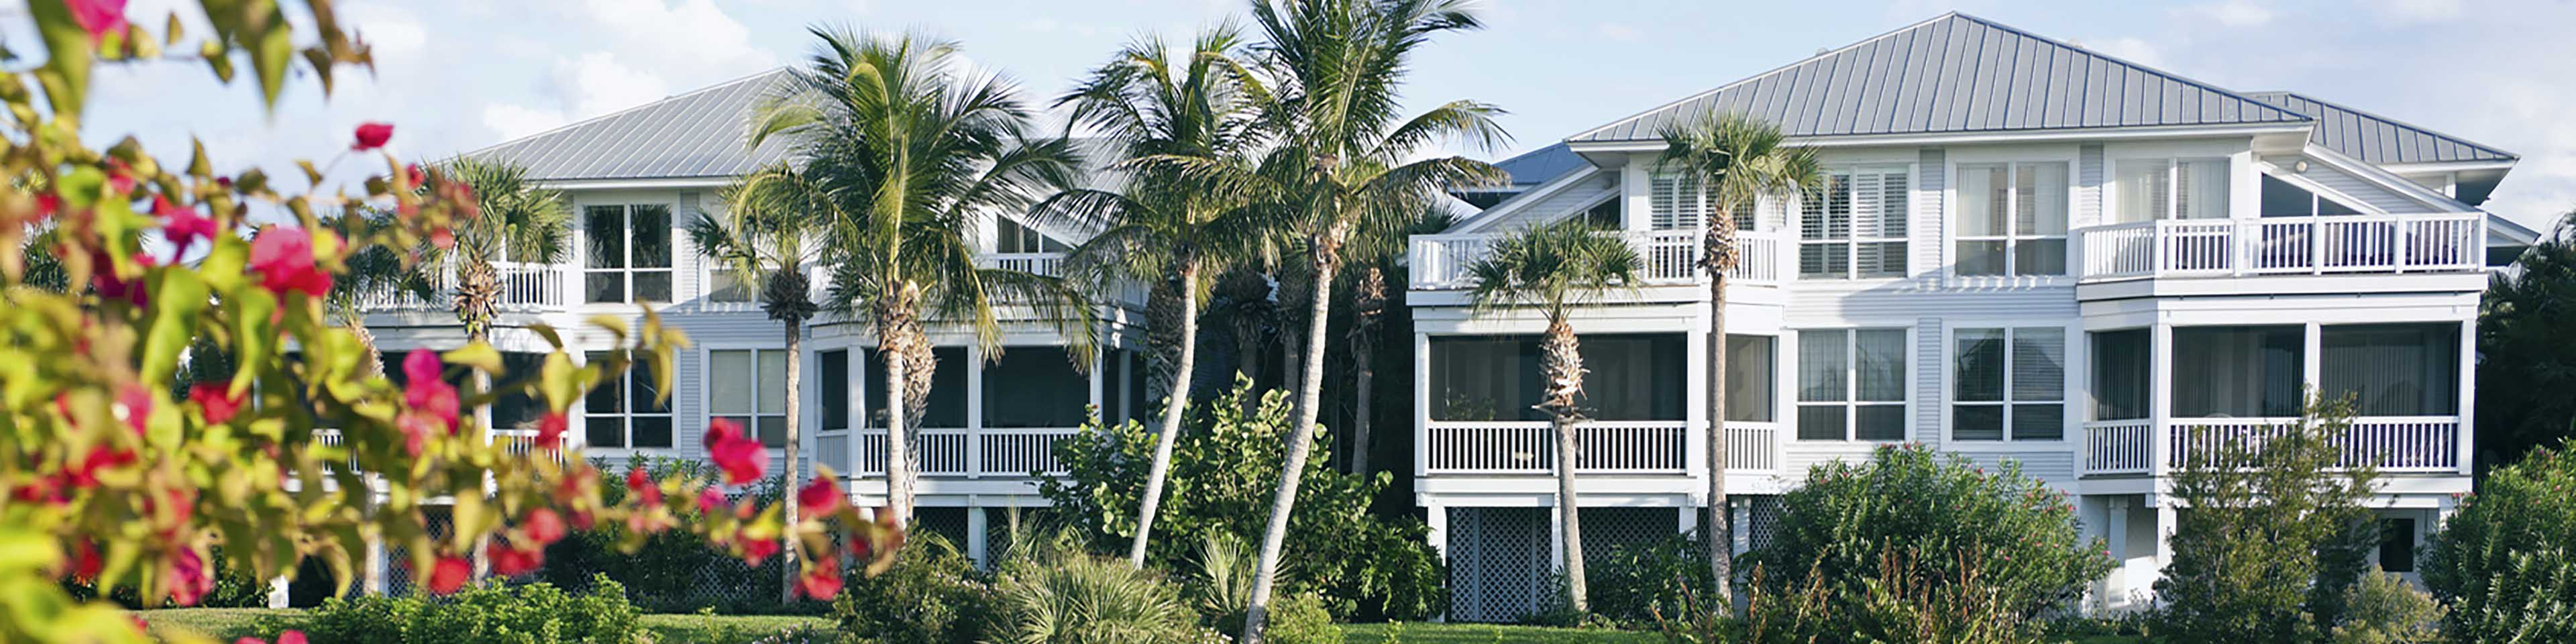 Why You Need Municipal Lien Search Florida Real Estate Transactions